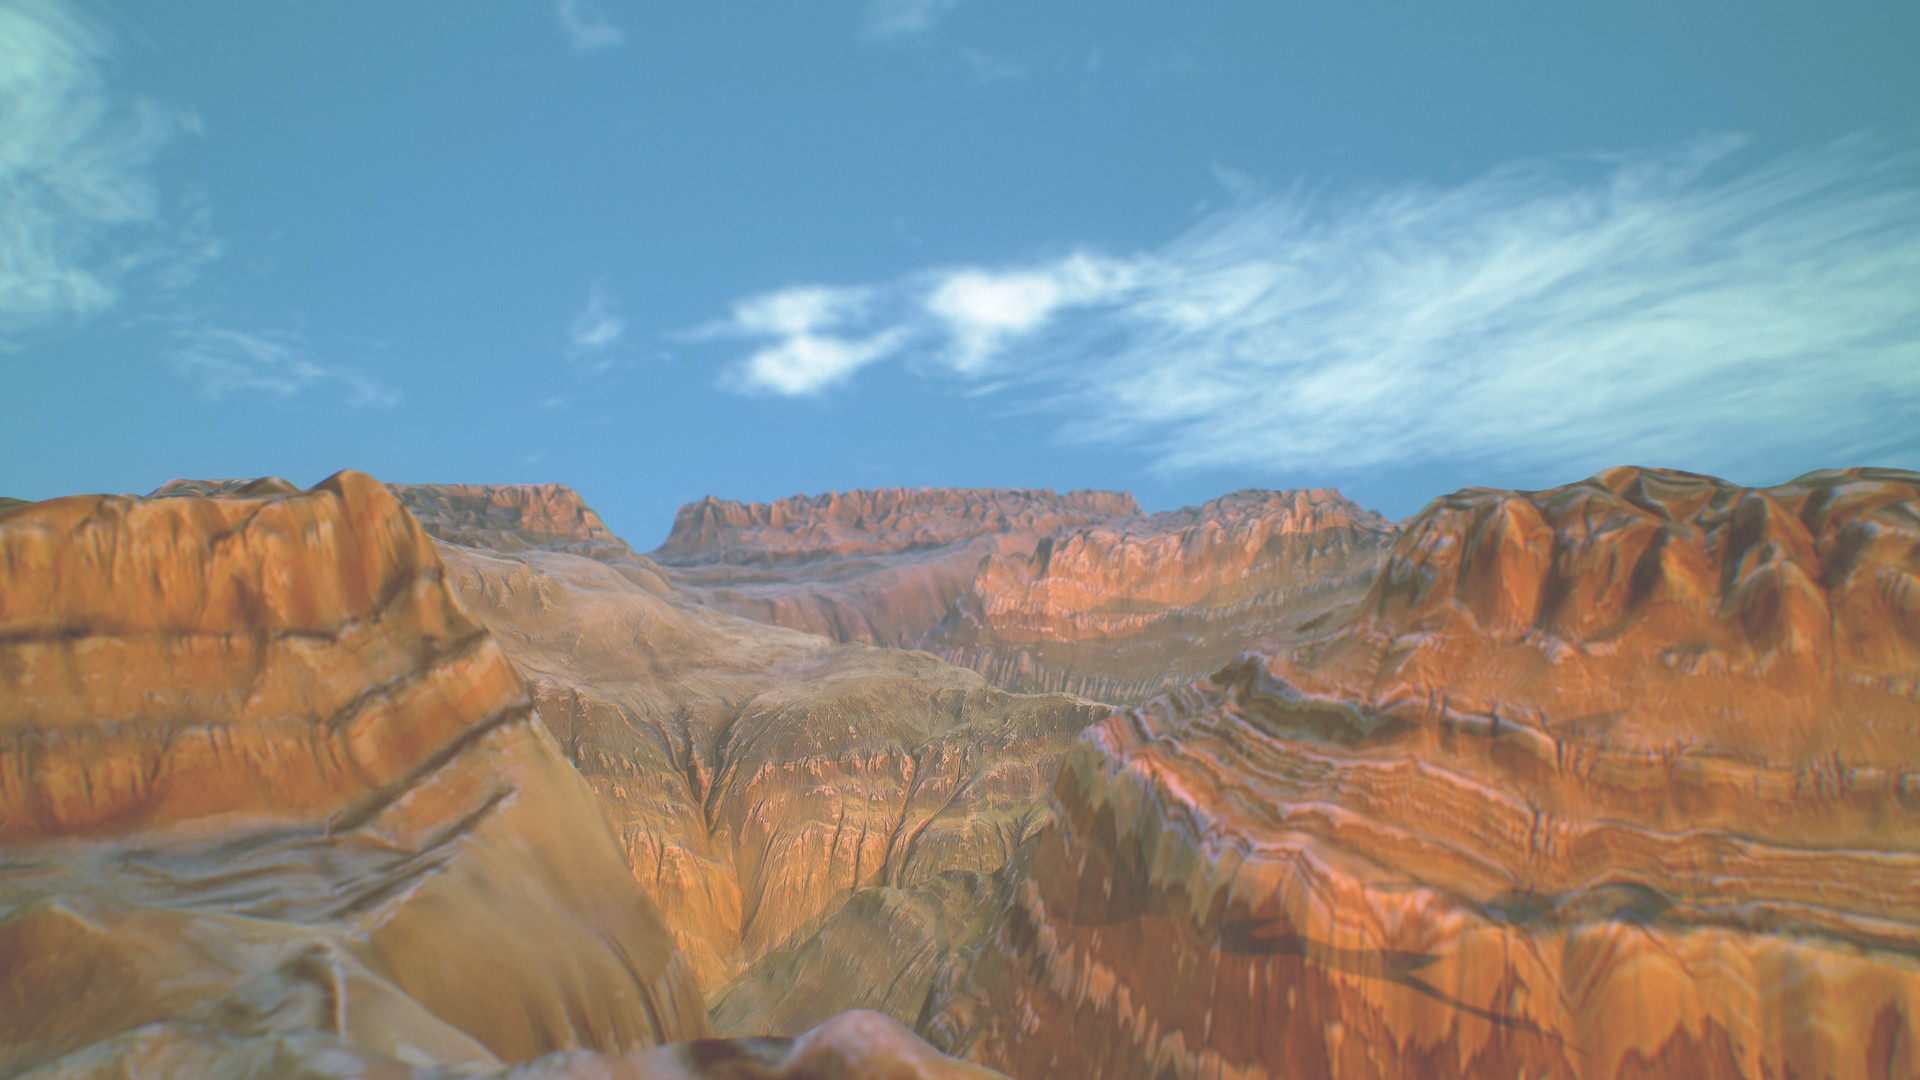 Cinematic Canyon Landscape - canyonized